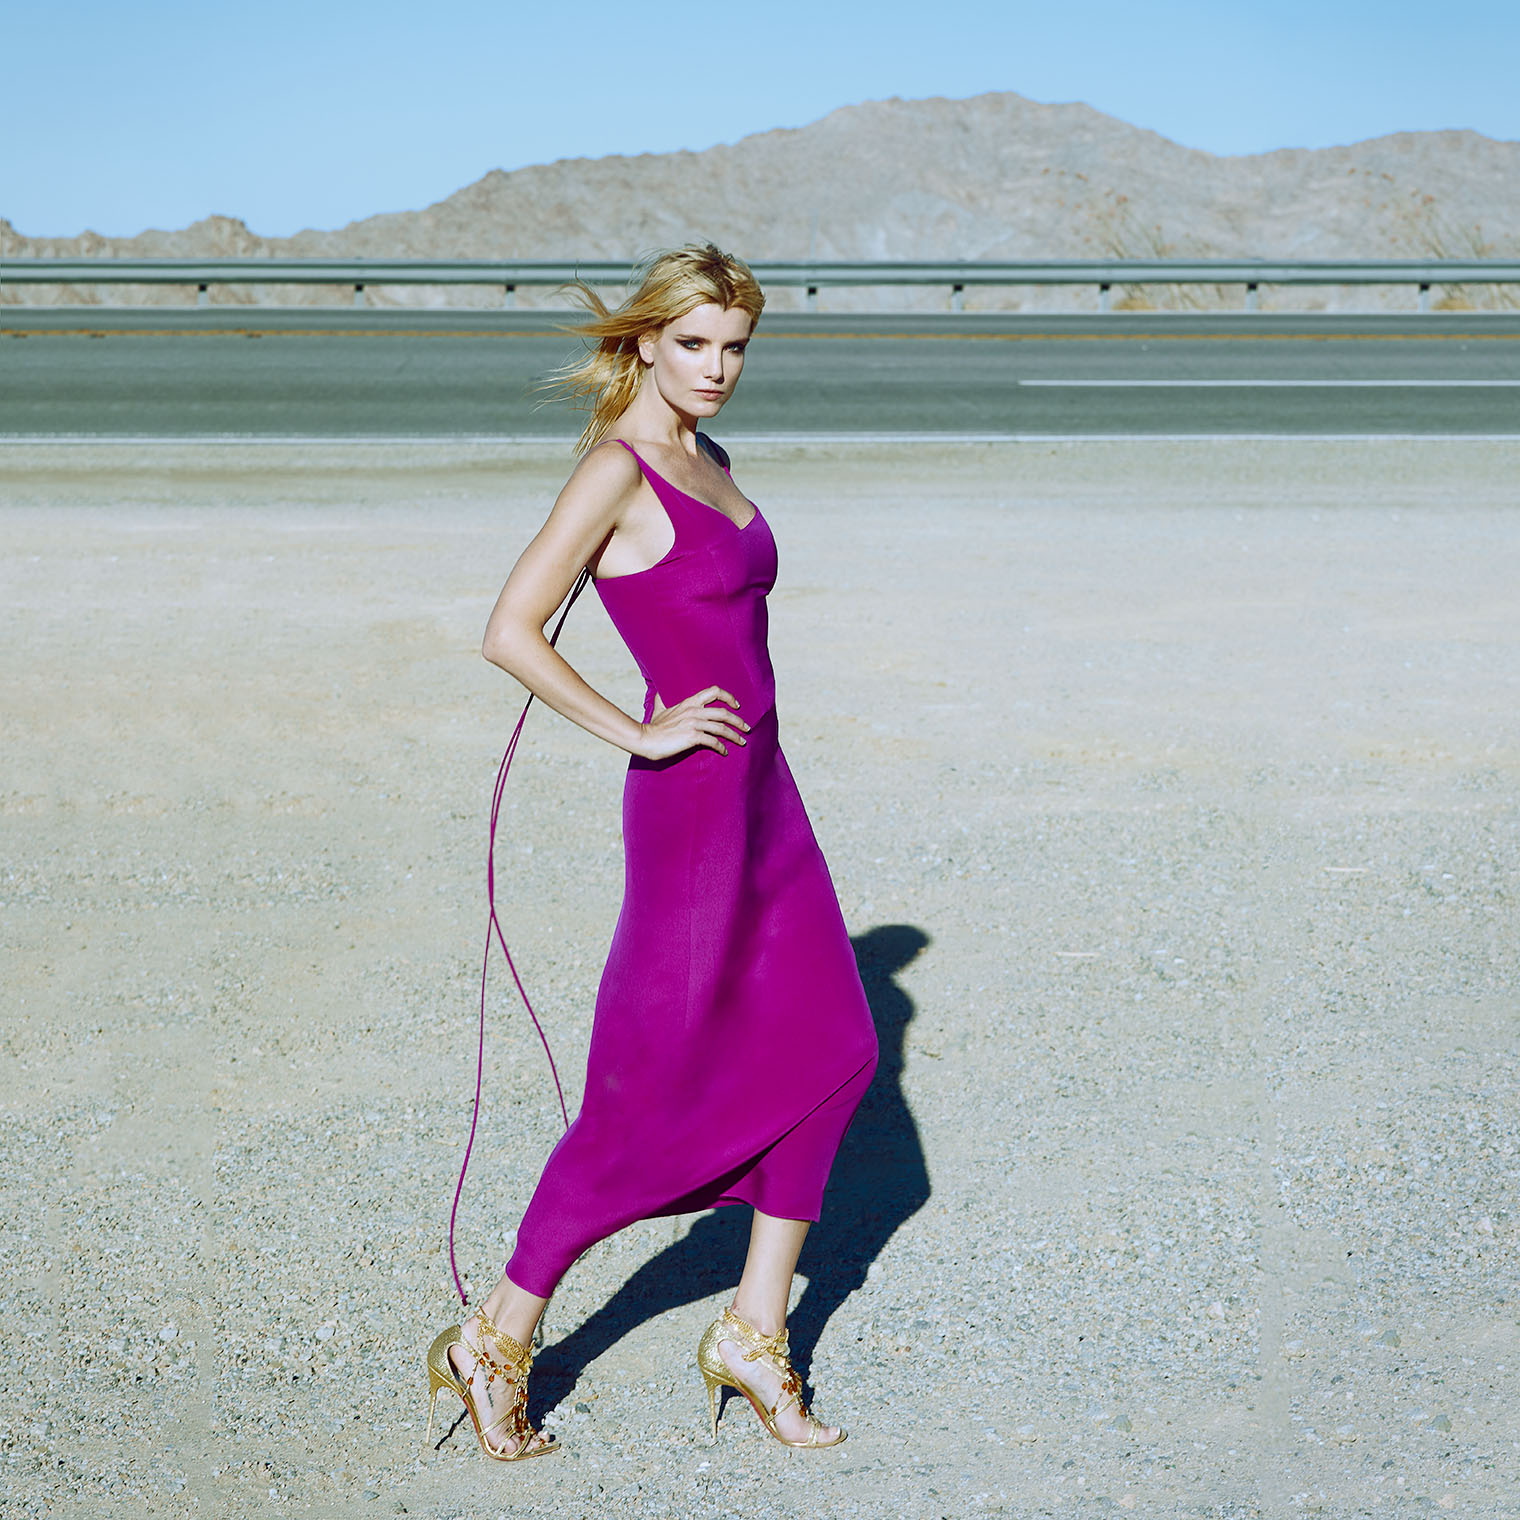 girl in purple silk dress on desert roadside in advertising campaign fashion shoot near Palm Springs, California photographed by Robert Wilde